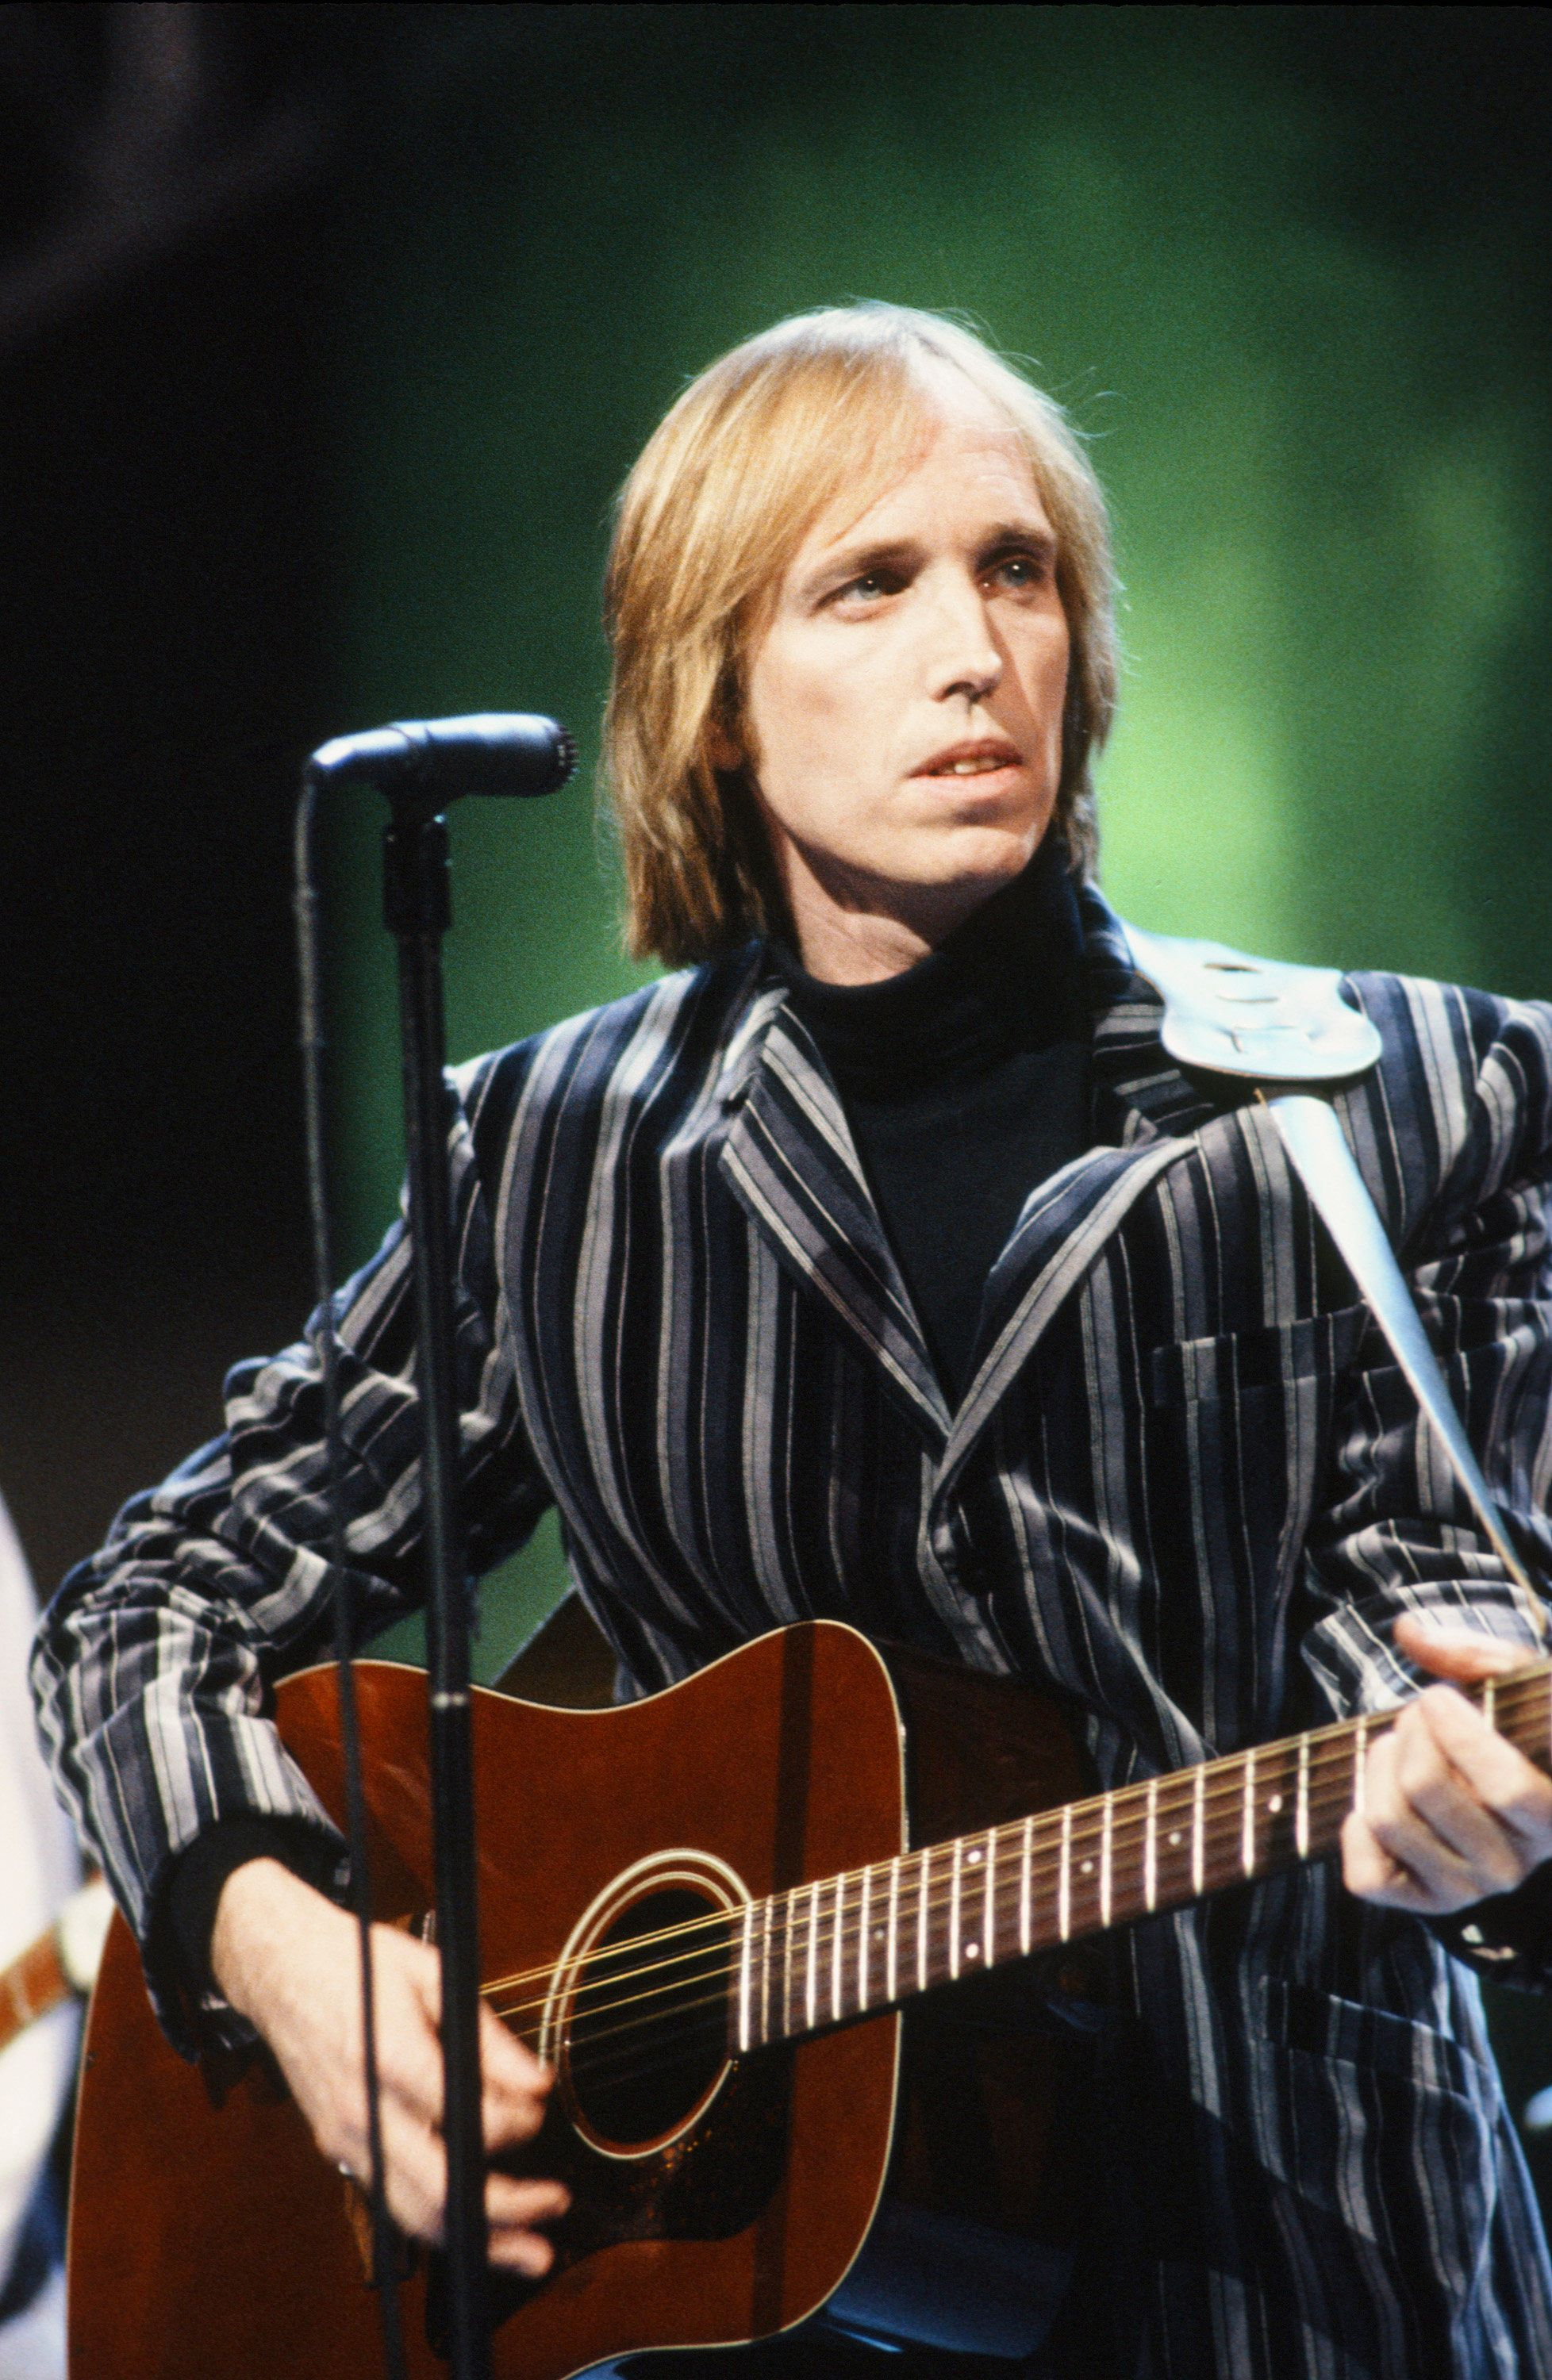 Tom Petty performing in February